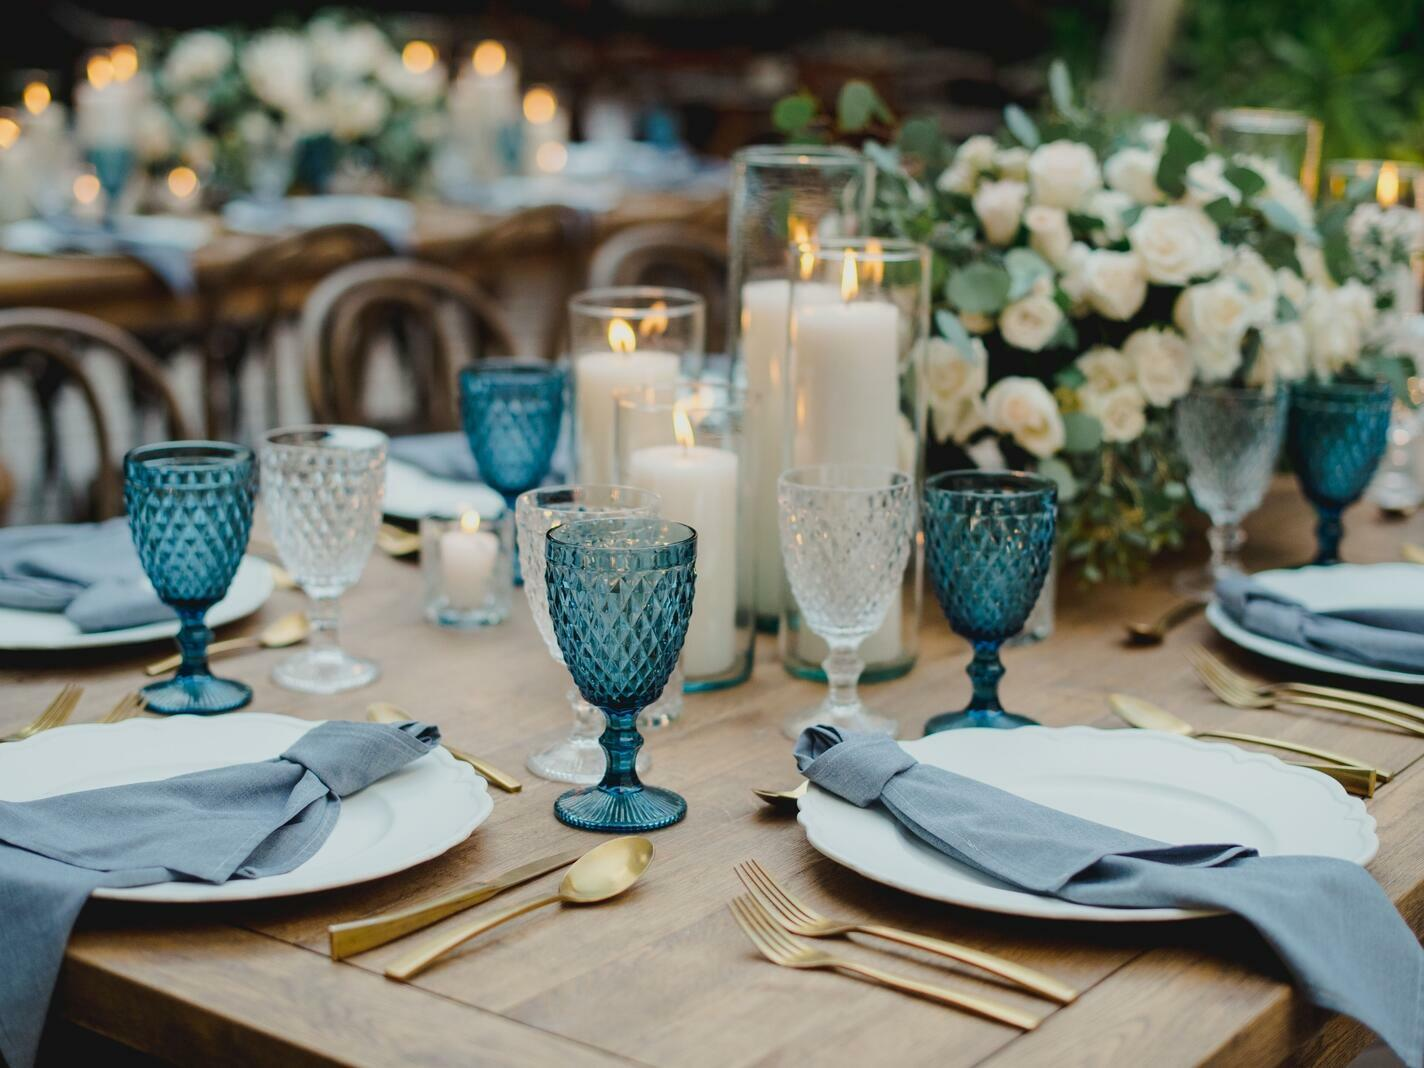 table decorated with place setting and centerpiece